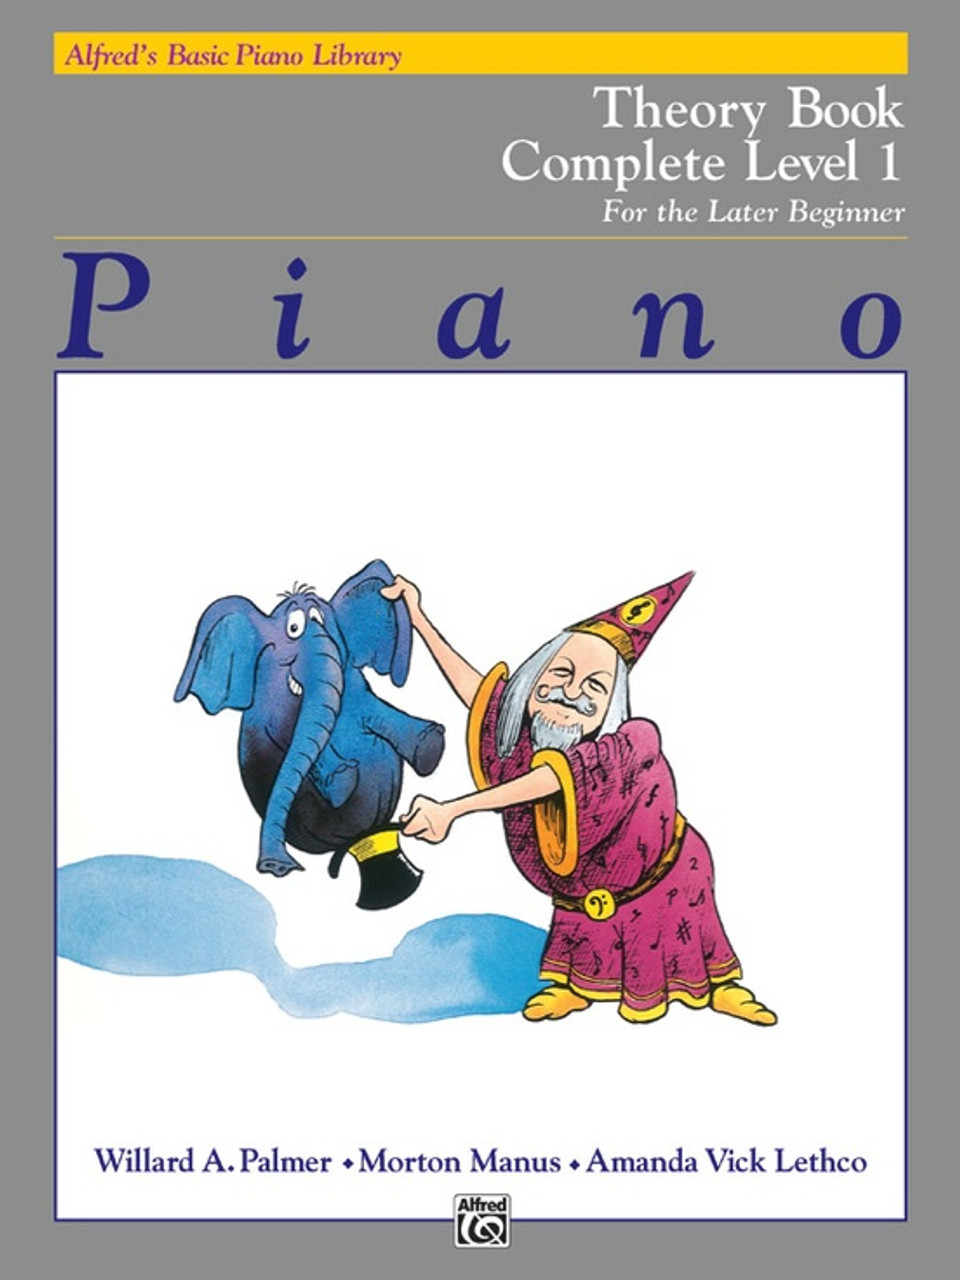 Alfred's Basic Piano Library: Theory Book Complete Level 1 (1A/1B)